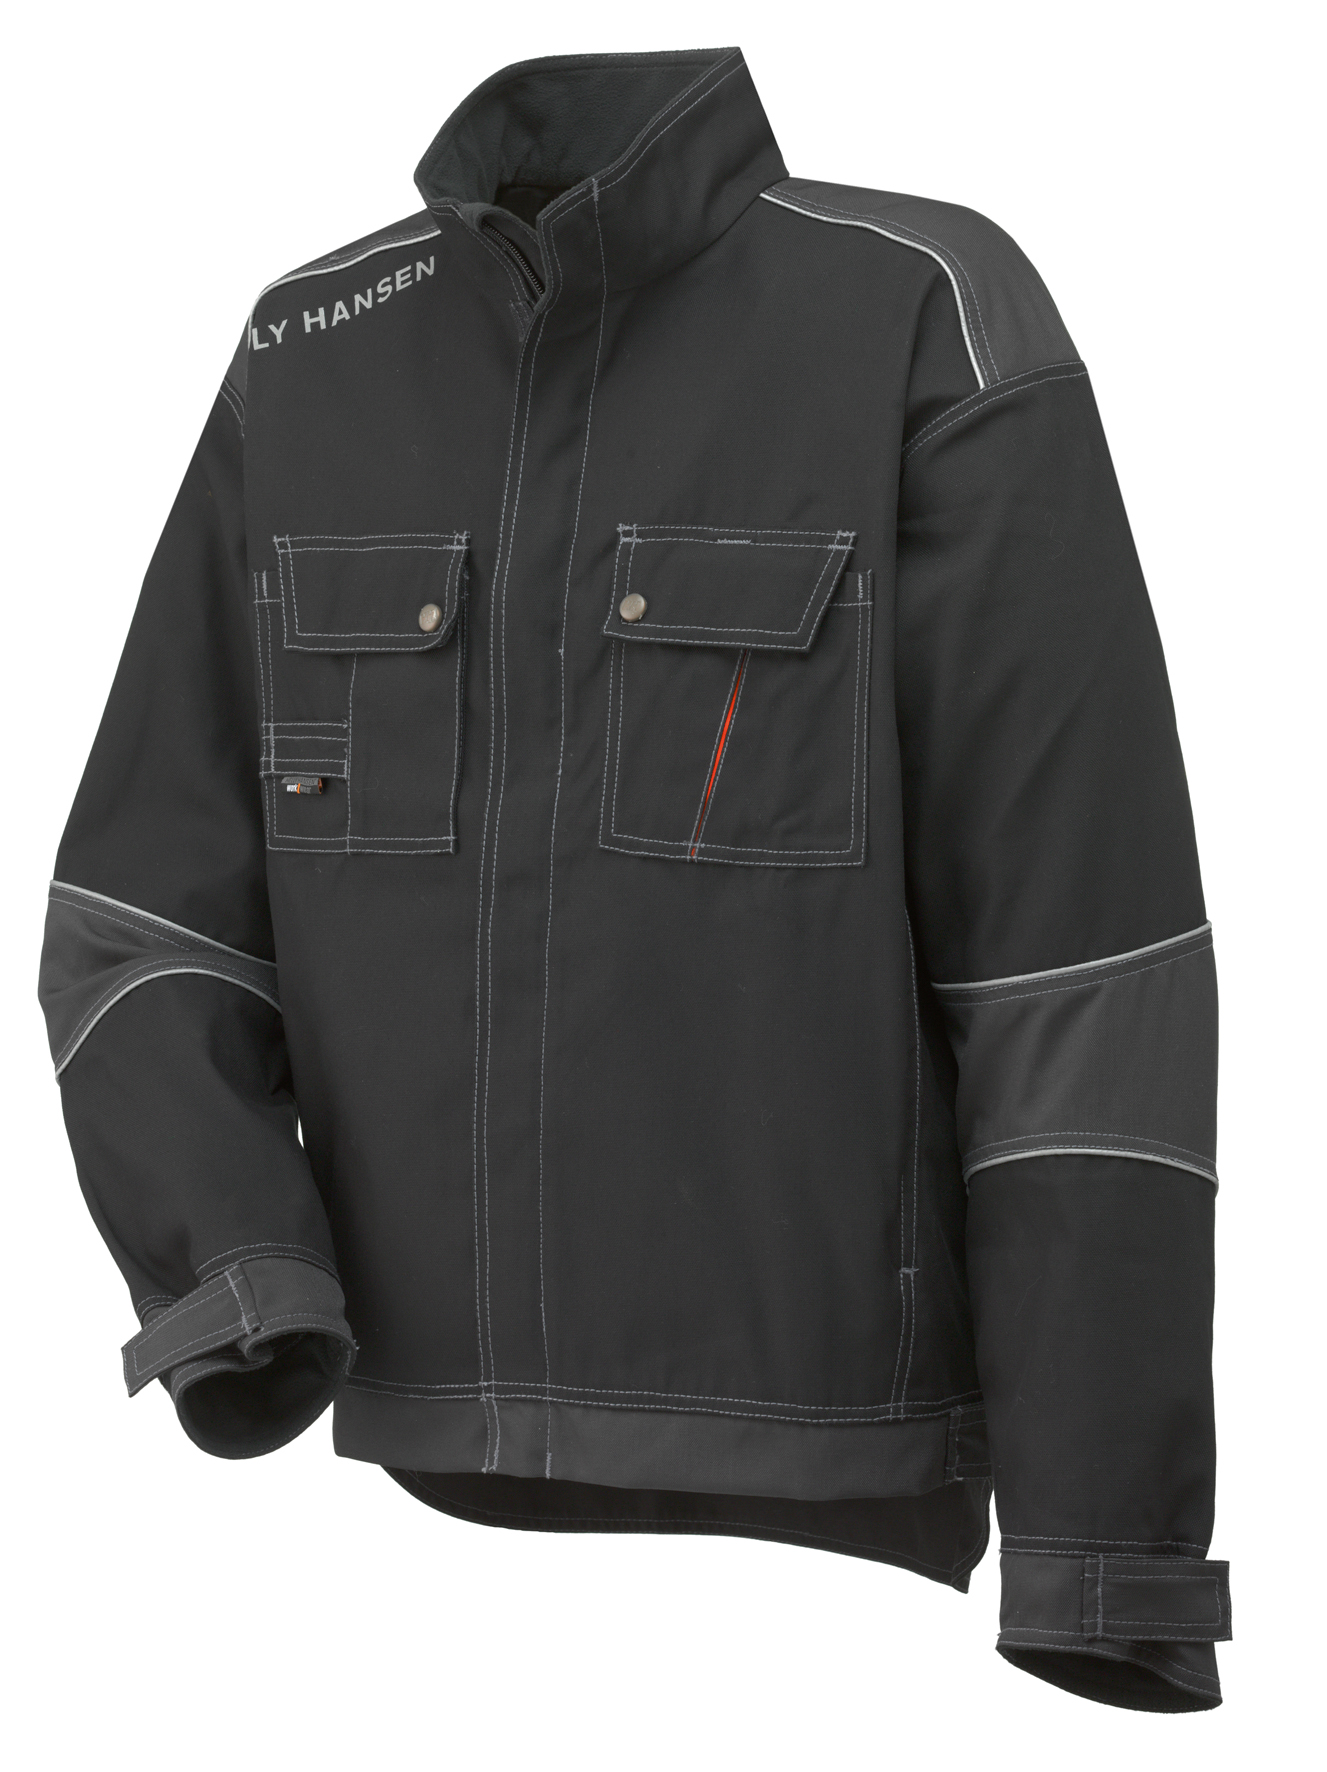 Chelsea Lined Jacket - Black/Charcoal - S